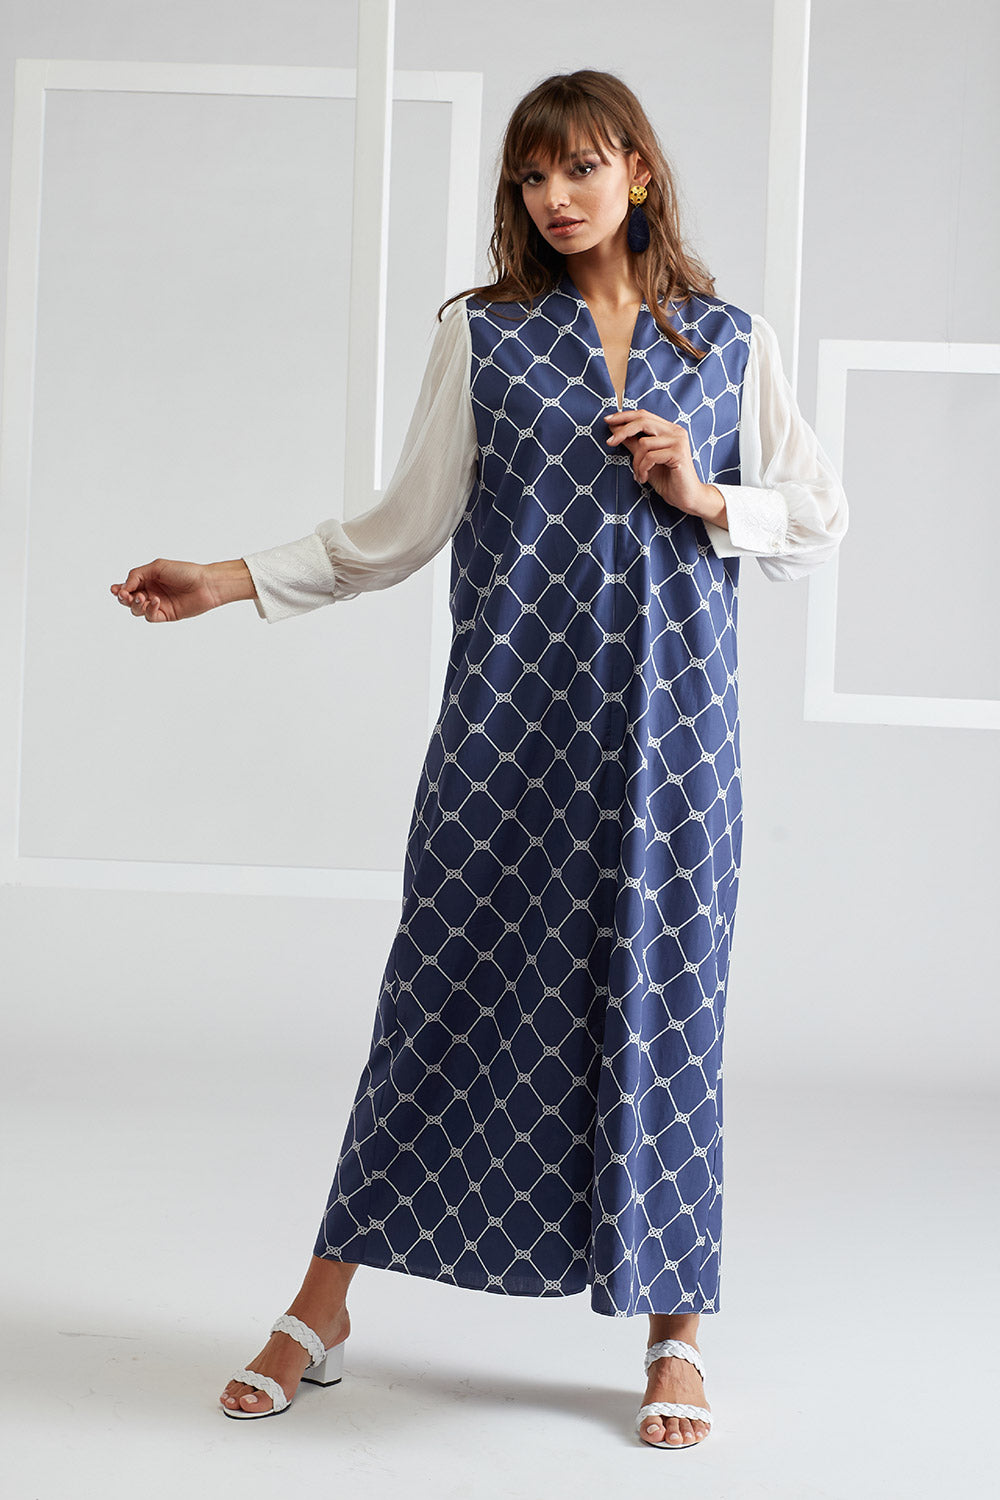 Printed Cotton Poplin and Silk Chiffon Dress- Royal Marine Navy